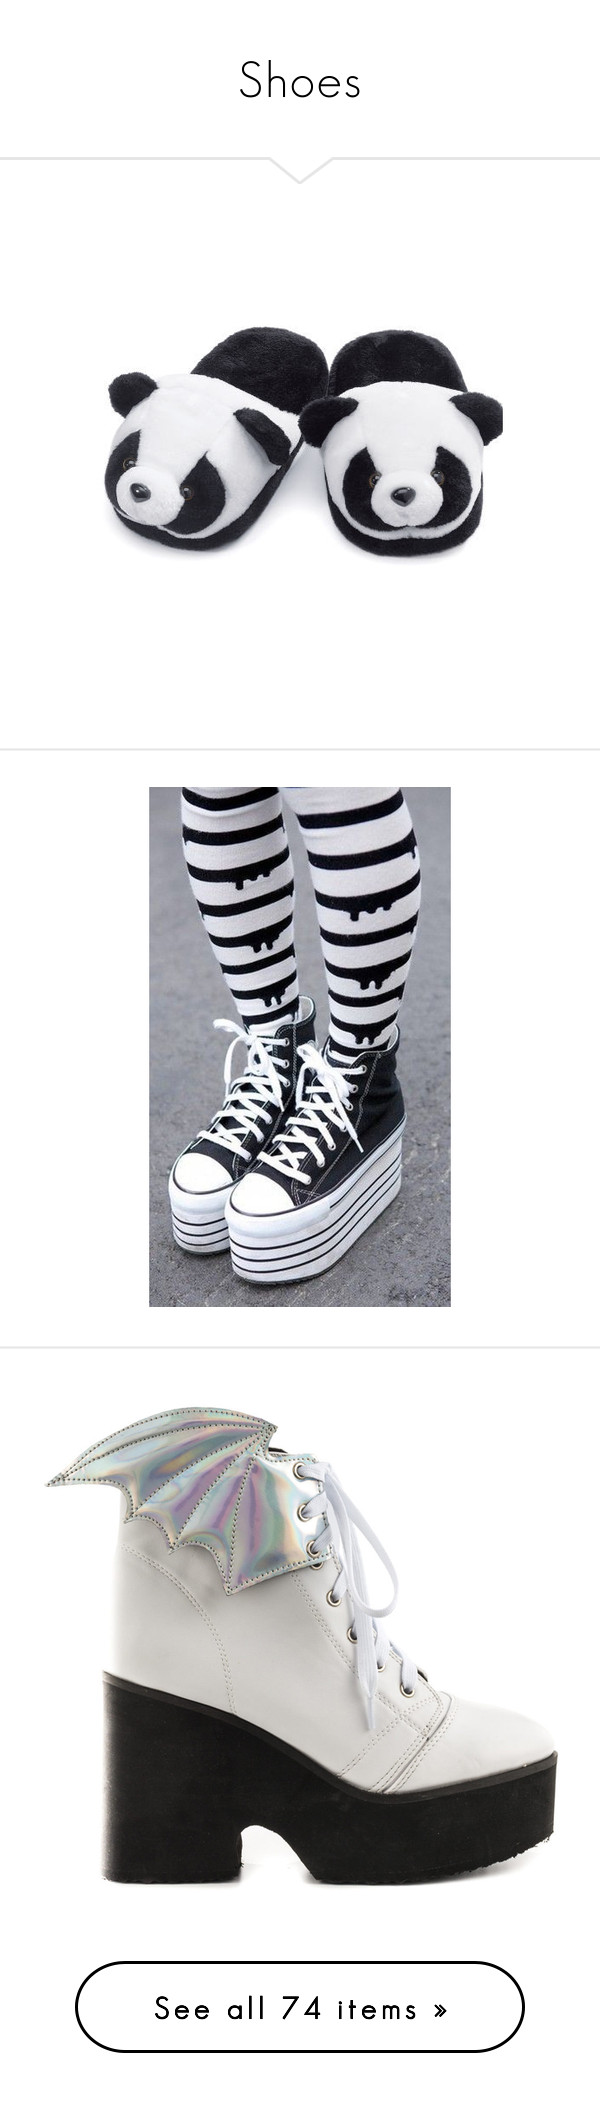 """""""Shoes"""" by pierce-the-sunflower ❤ liked on Polyvore featuring shoes, slippers, pijamas, panda, pants, leggings, legging pants, converse leggings, pastel goth pants and goth leggings"""